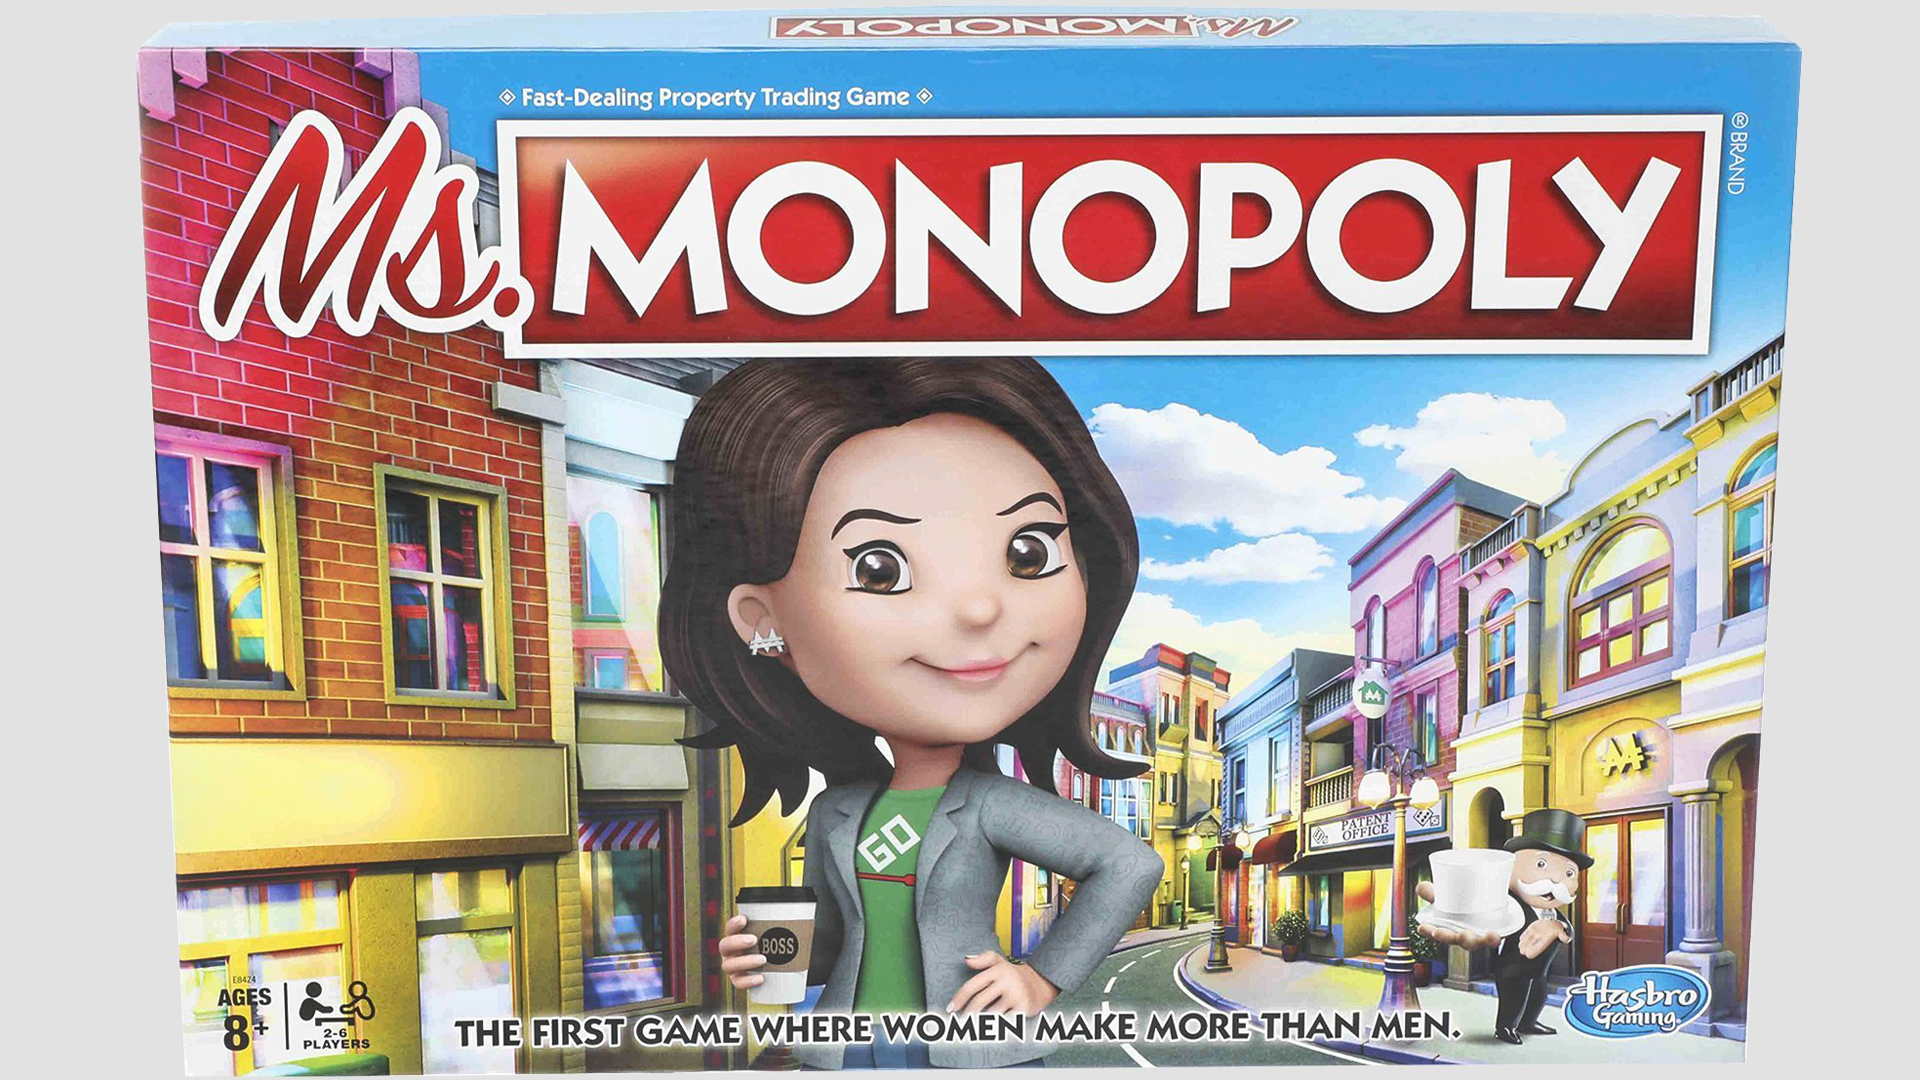 Ms. Monopoly is meant to celebrate women's empowerment by giving women a head start in the game. (Credit: Hasbro)